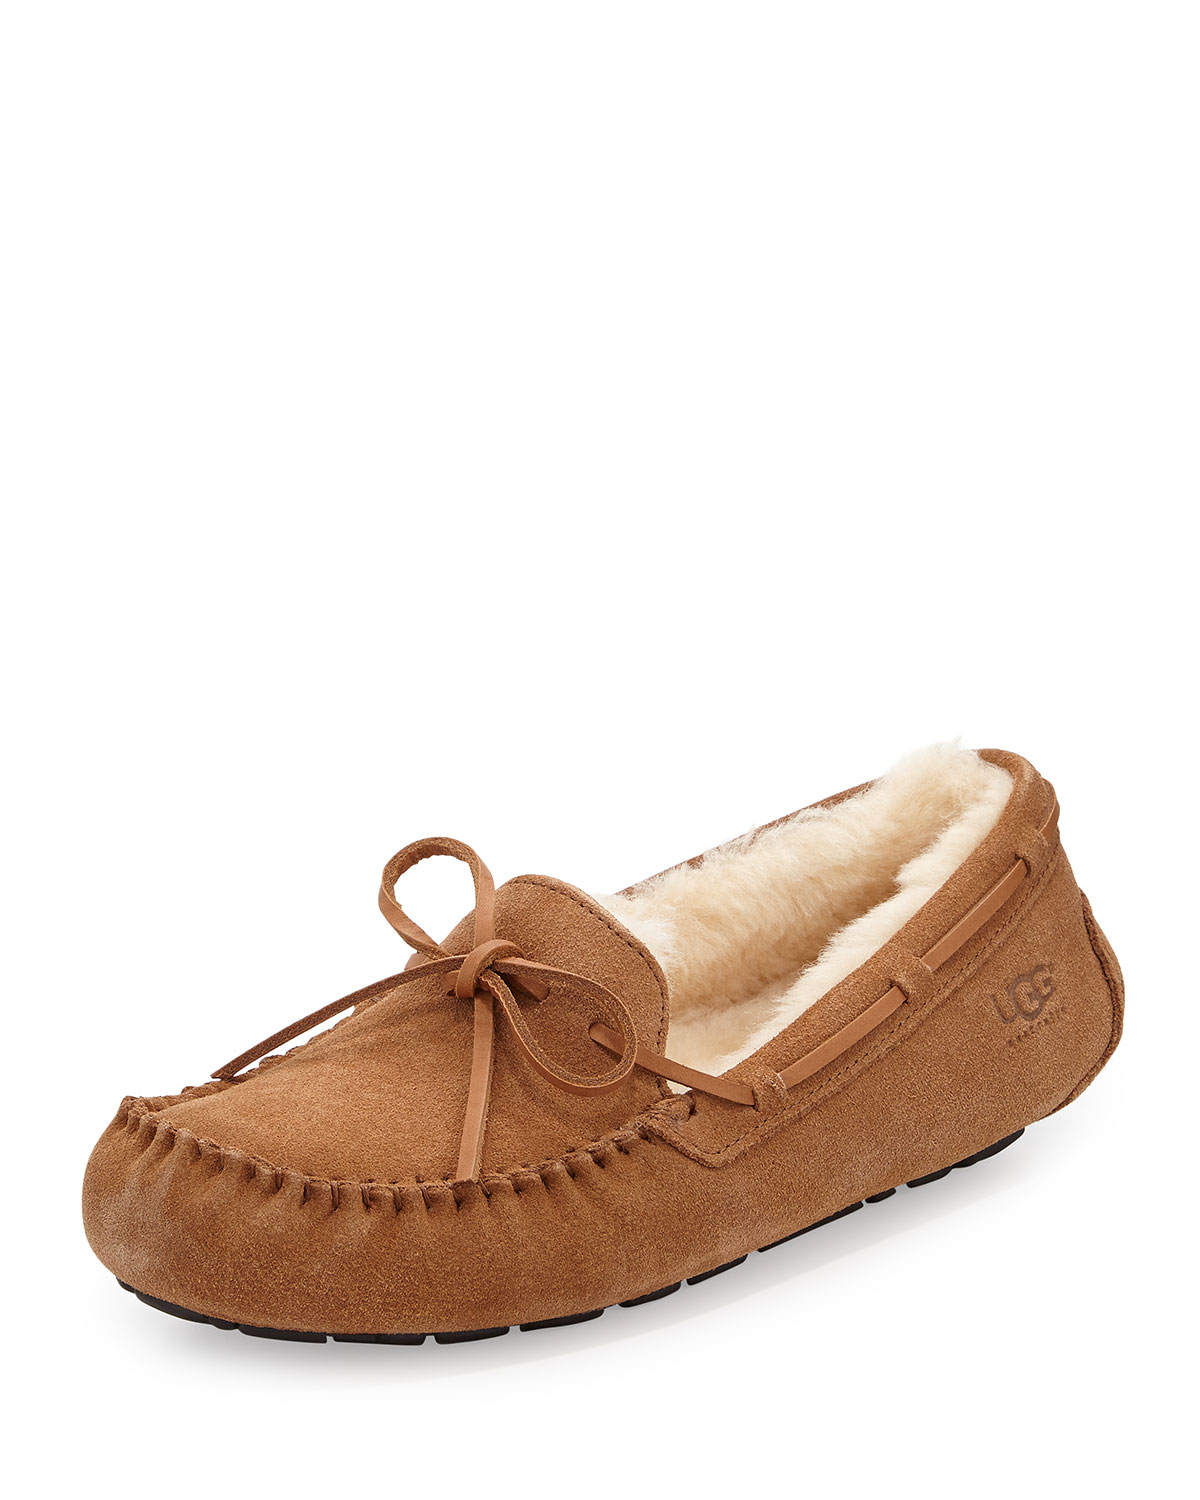 b6476501369 Ugg Olsen Moccasin Slippers - cheap watches mgc-gas.com